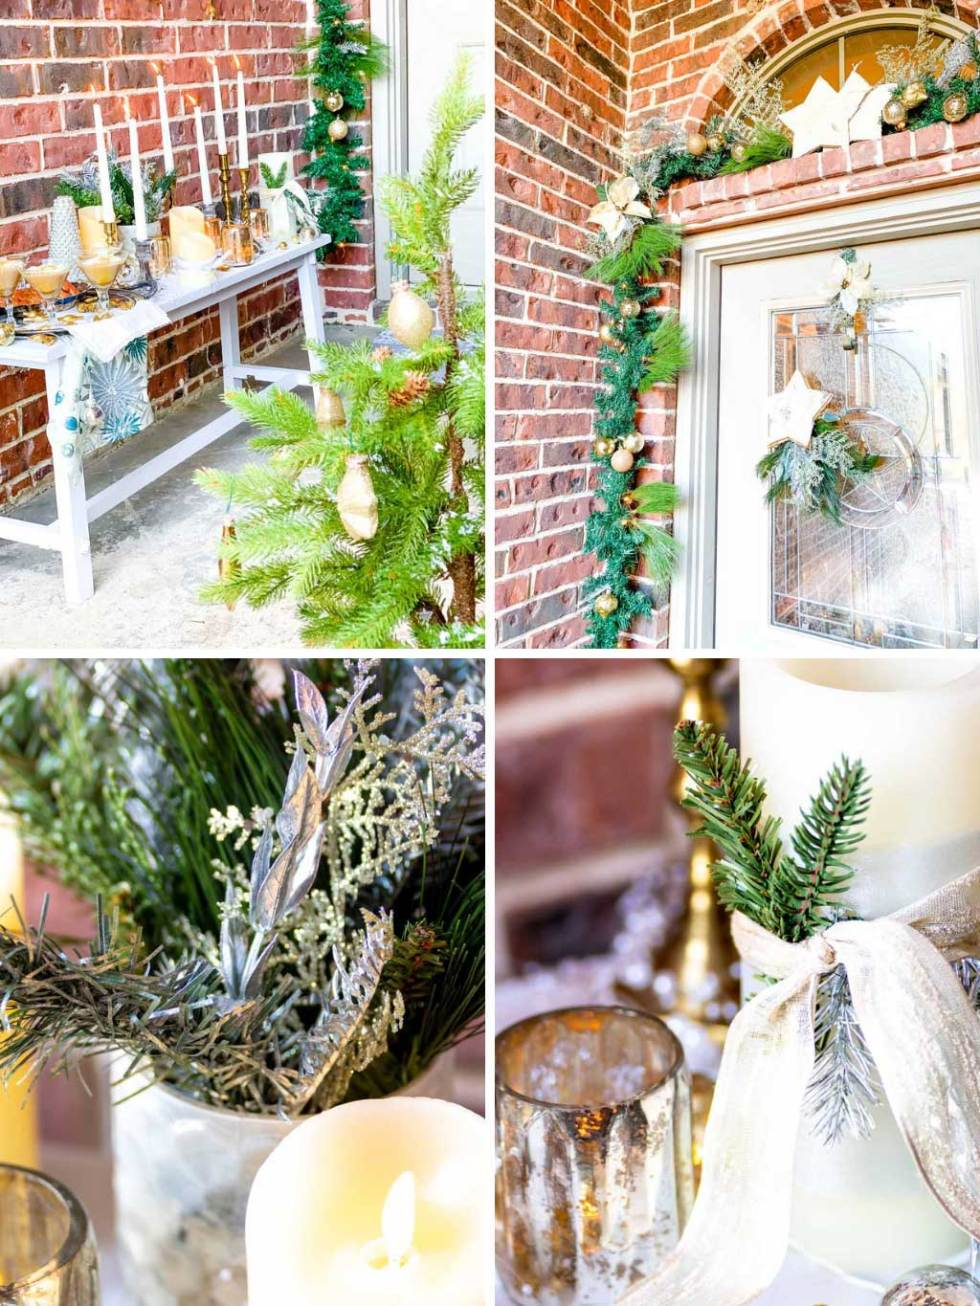 Front door and entry way details with Christmas decor